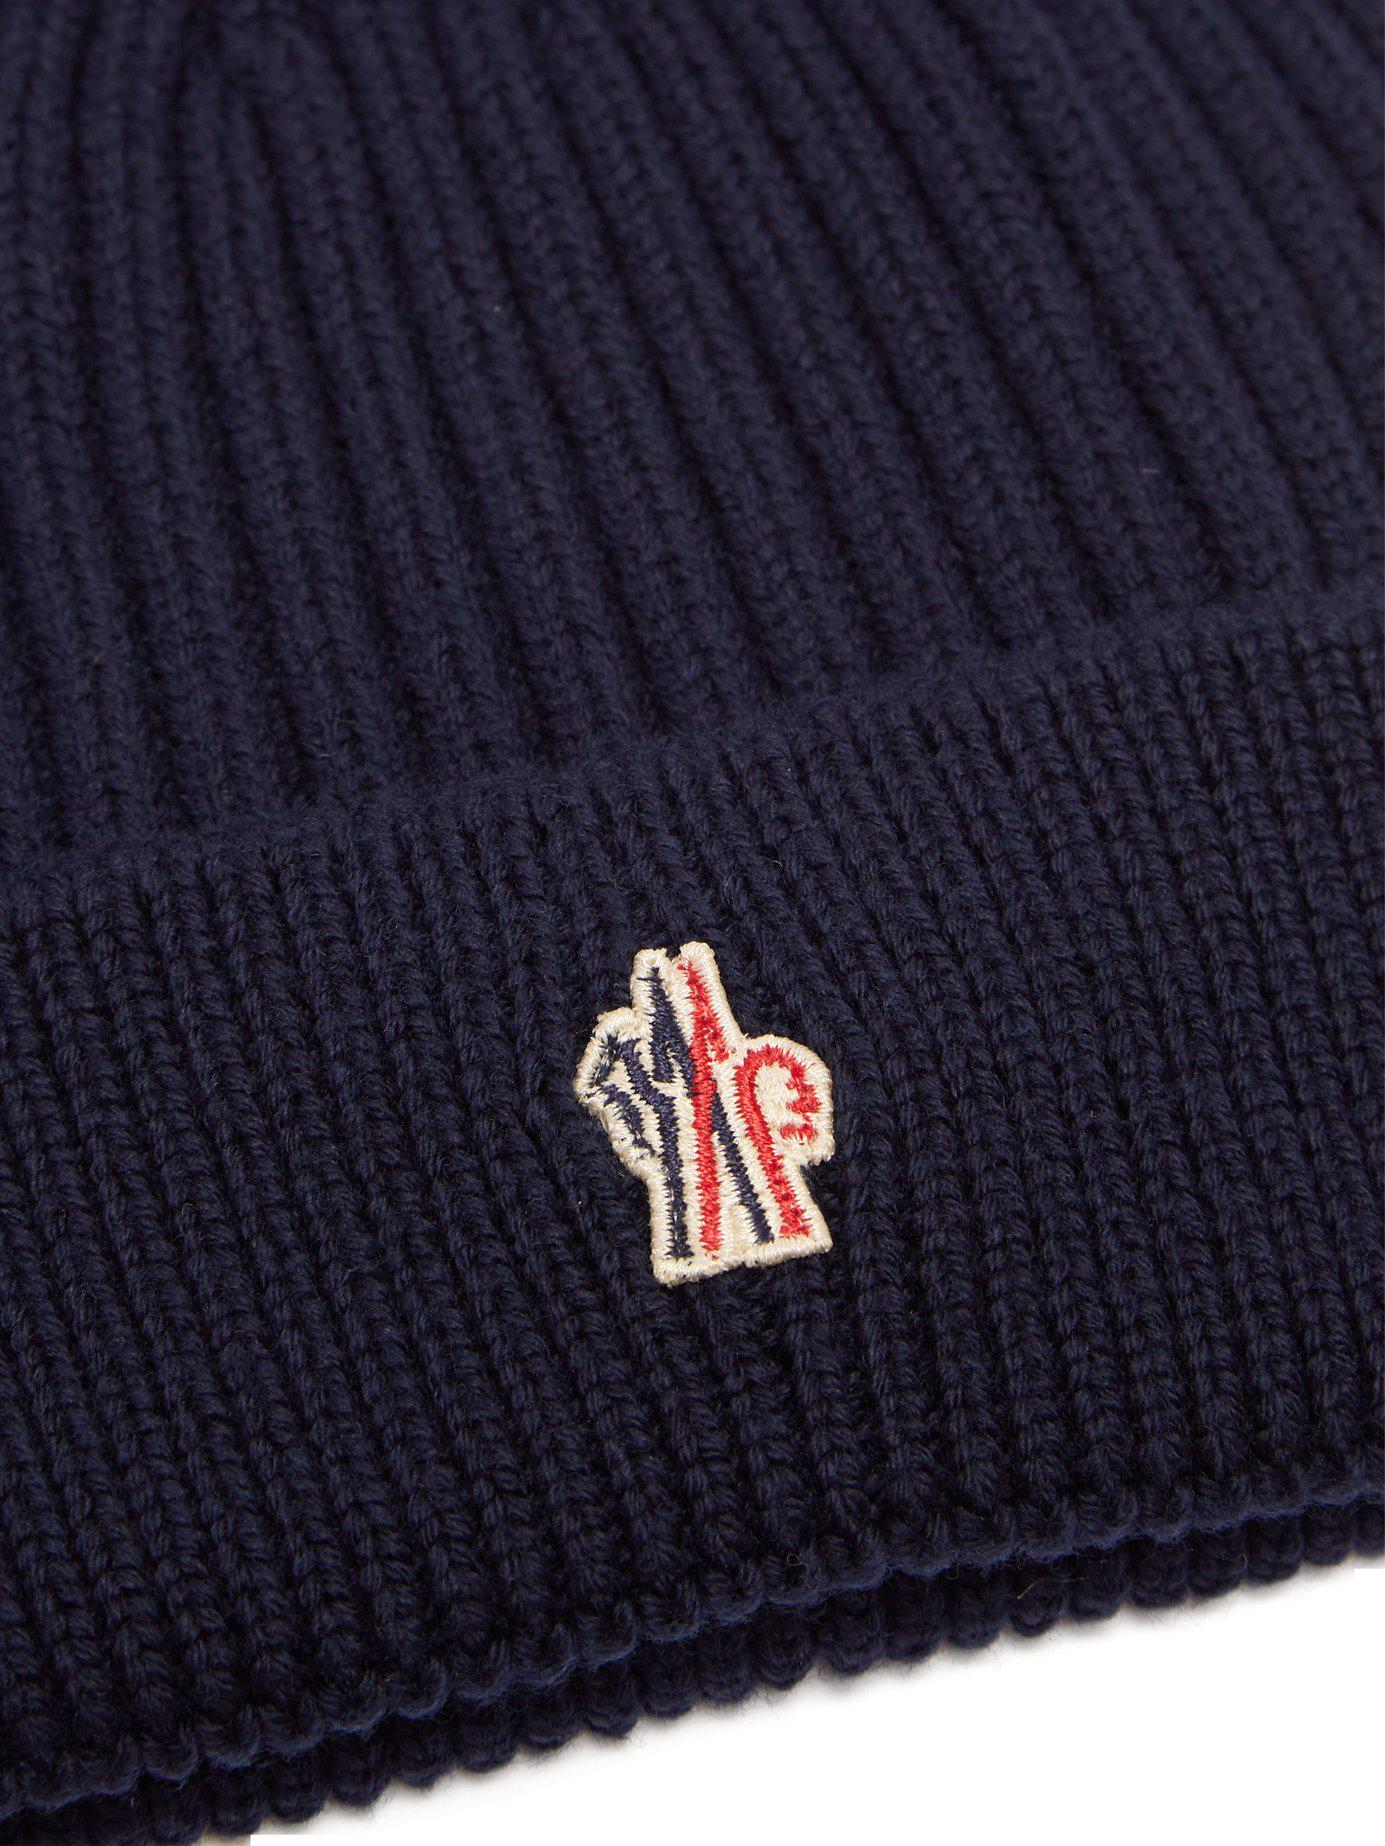 4027609aa40 Lyst - Moncler Grenoble Logo Embroidered Wool Beanie Hat in Blue for Men